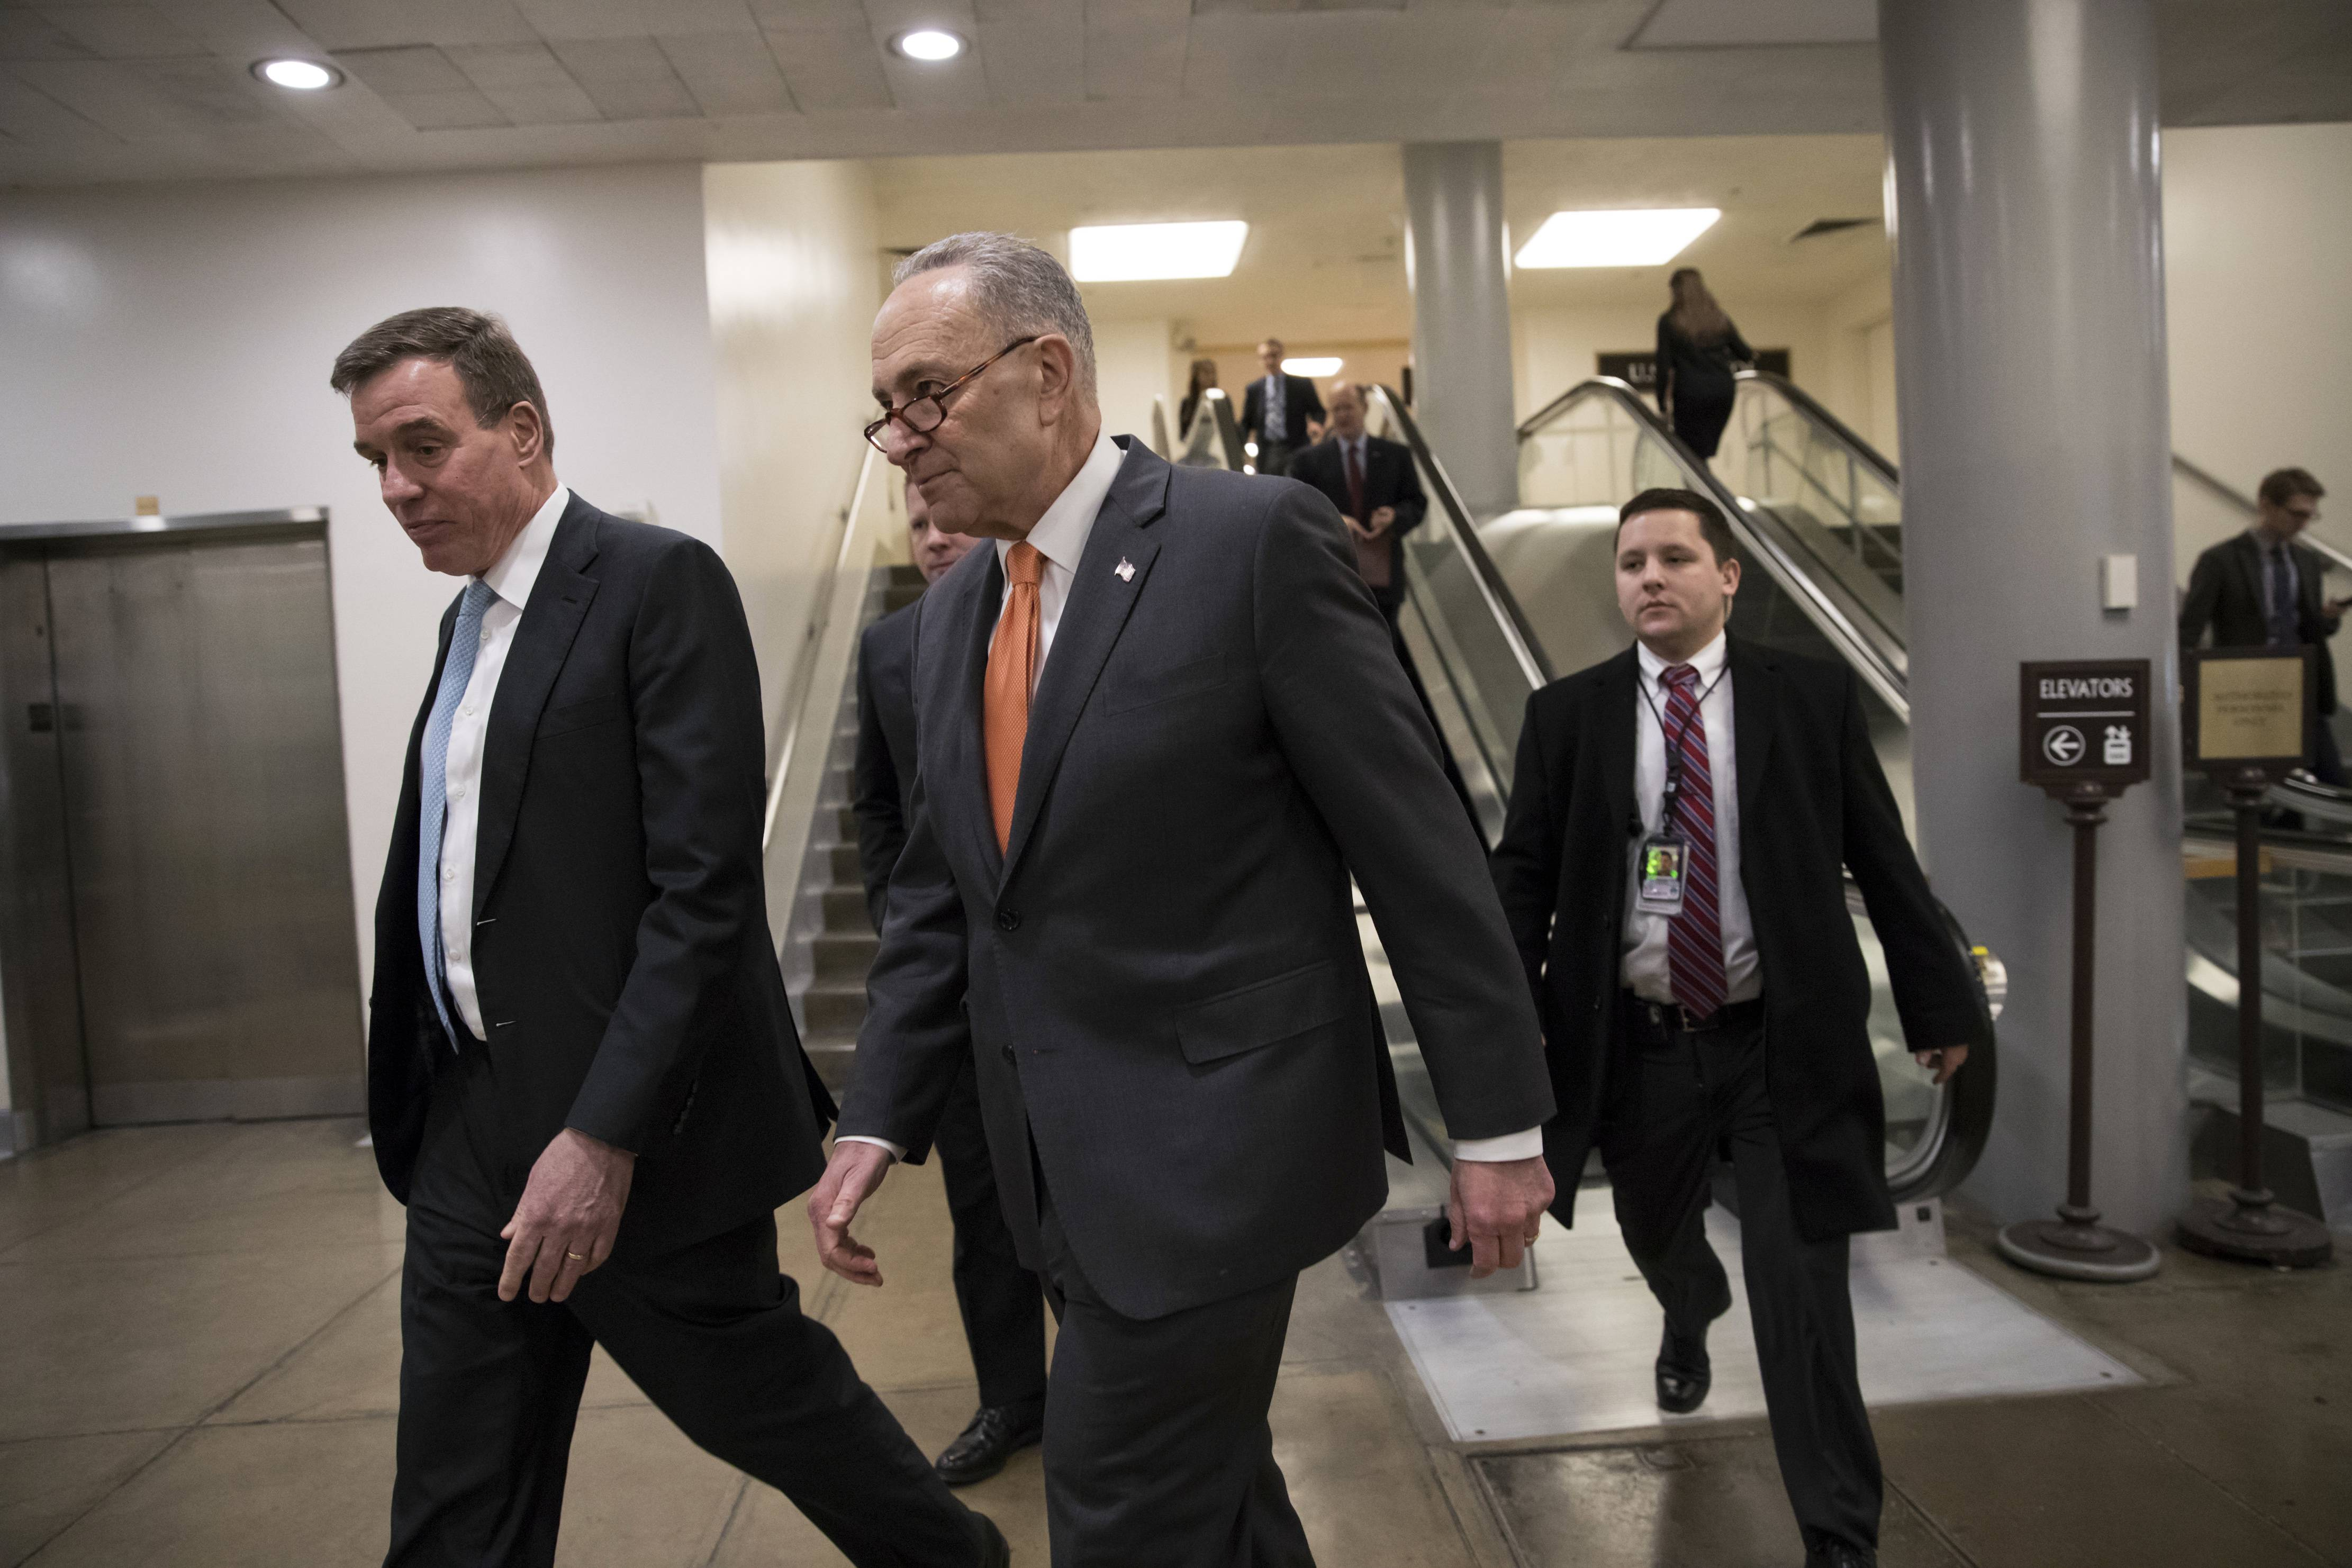 Senate Minority Leader Chuck Schumer, D-N.Y., center, and Sen. Mark Warner, D-Va., left, the vice chair of the Senate Select Committee on Intelligence, head to a closed security briefing at the Capitol in Washington, Tuesday, Feb. 6, 2018.